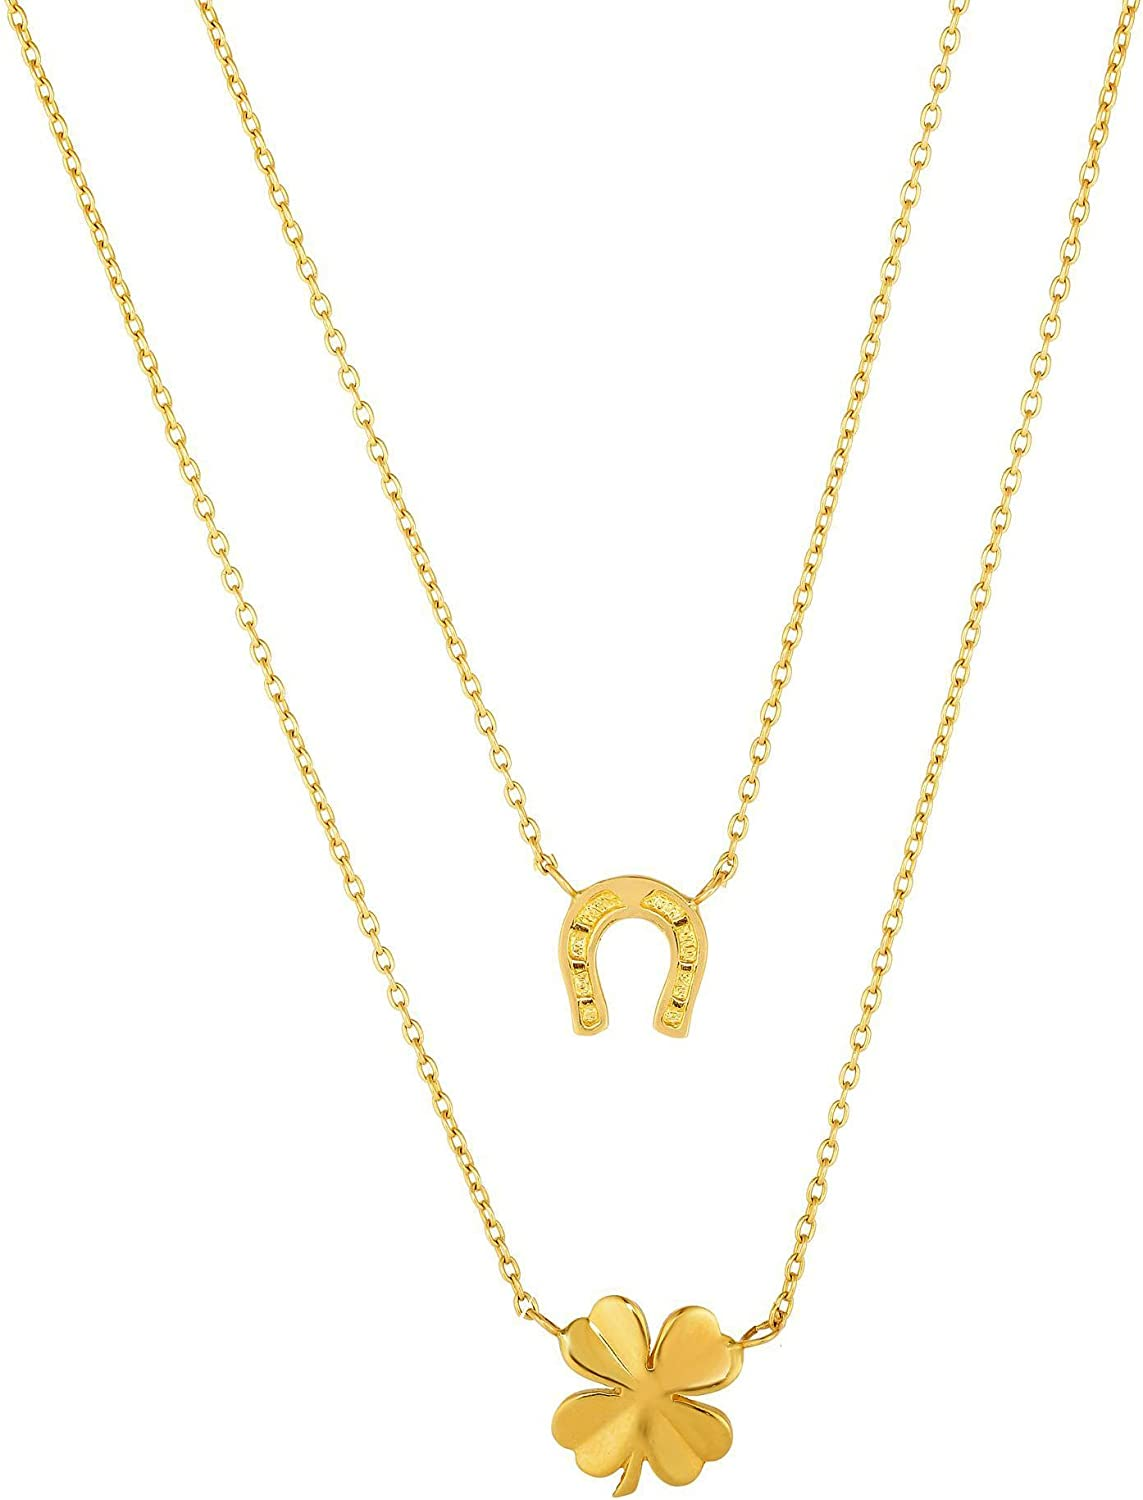 14k Yellow Gold Four Clover Horse Shoe Chain Necklace, 17